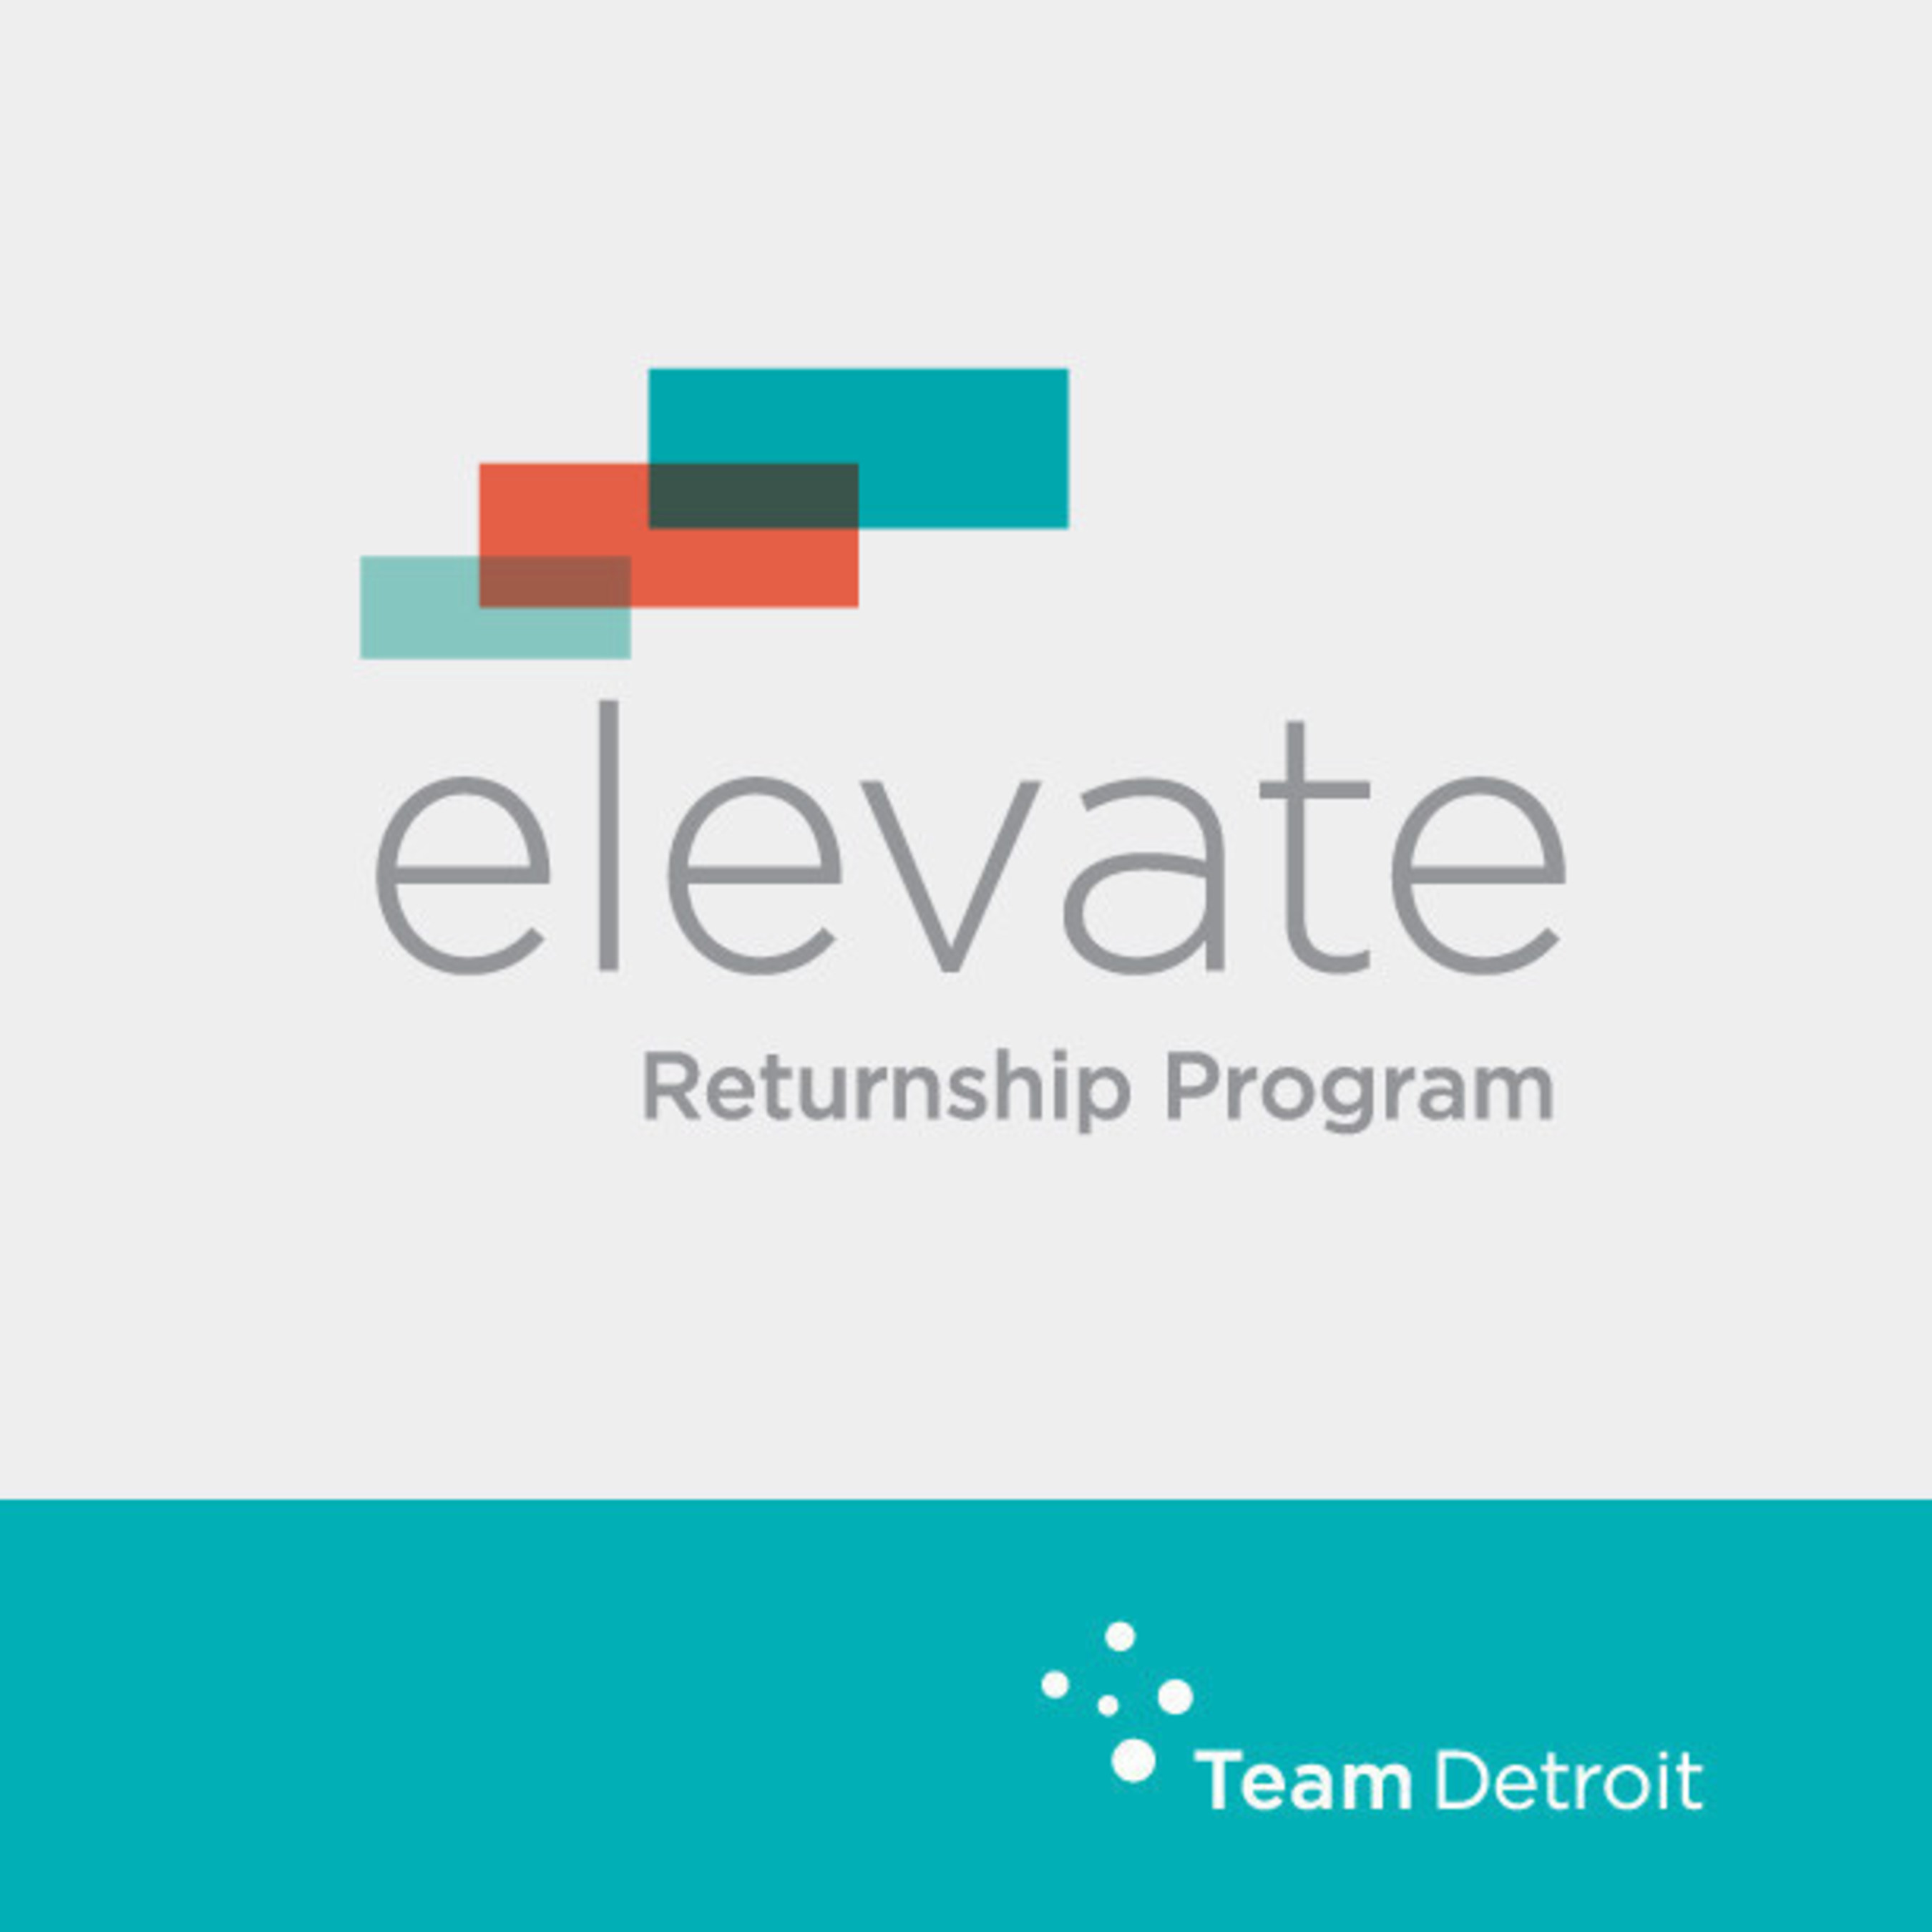 WPP's Team Detroit Gives Women the Chance to Re-Start their Careers with a 'Returnship' Program